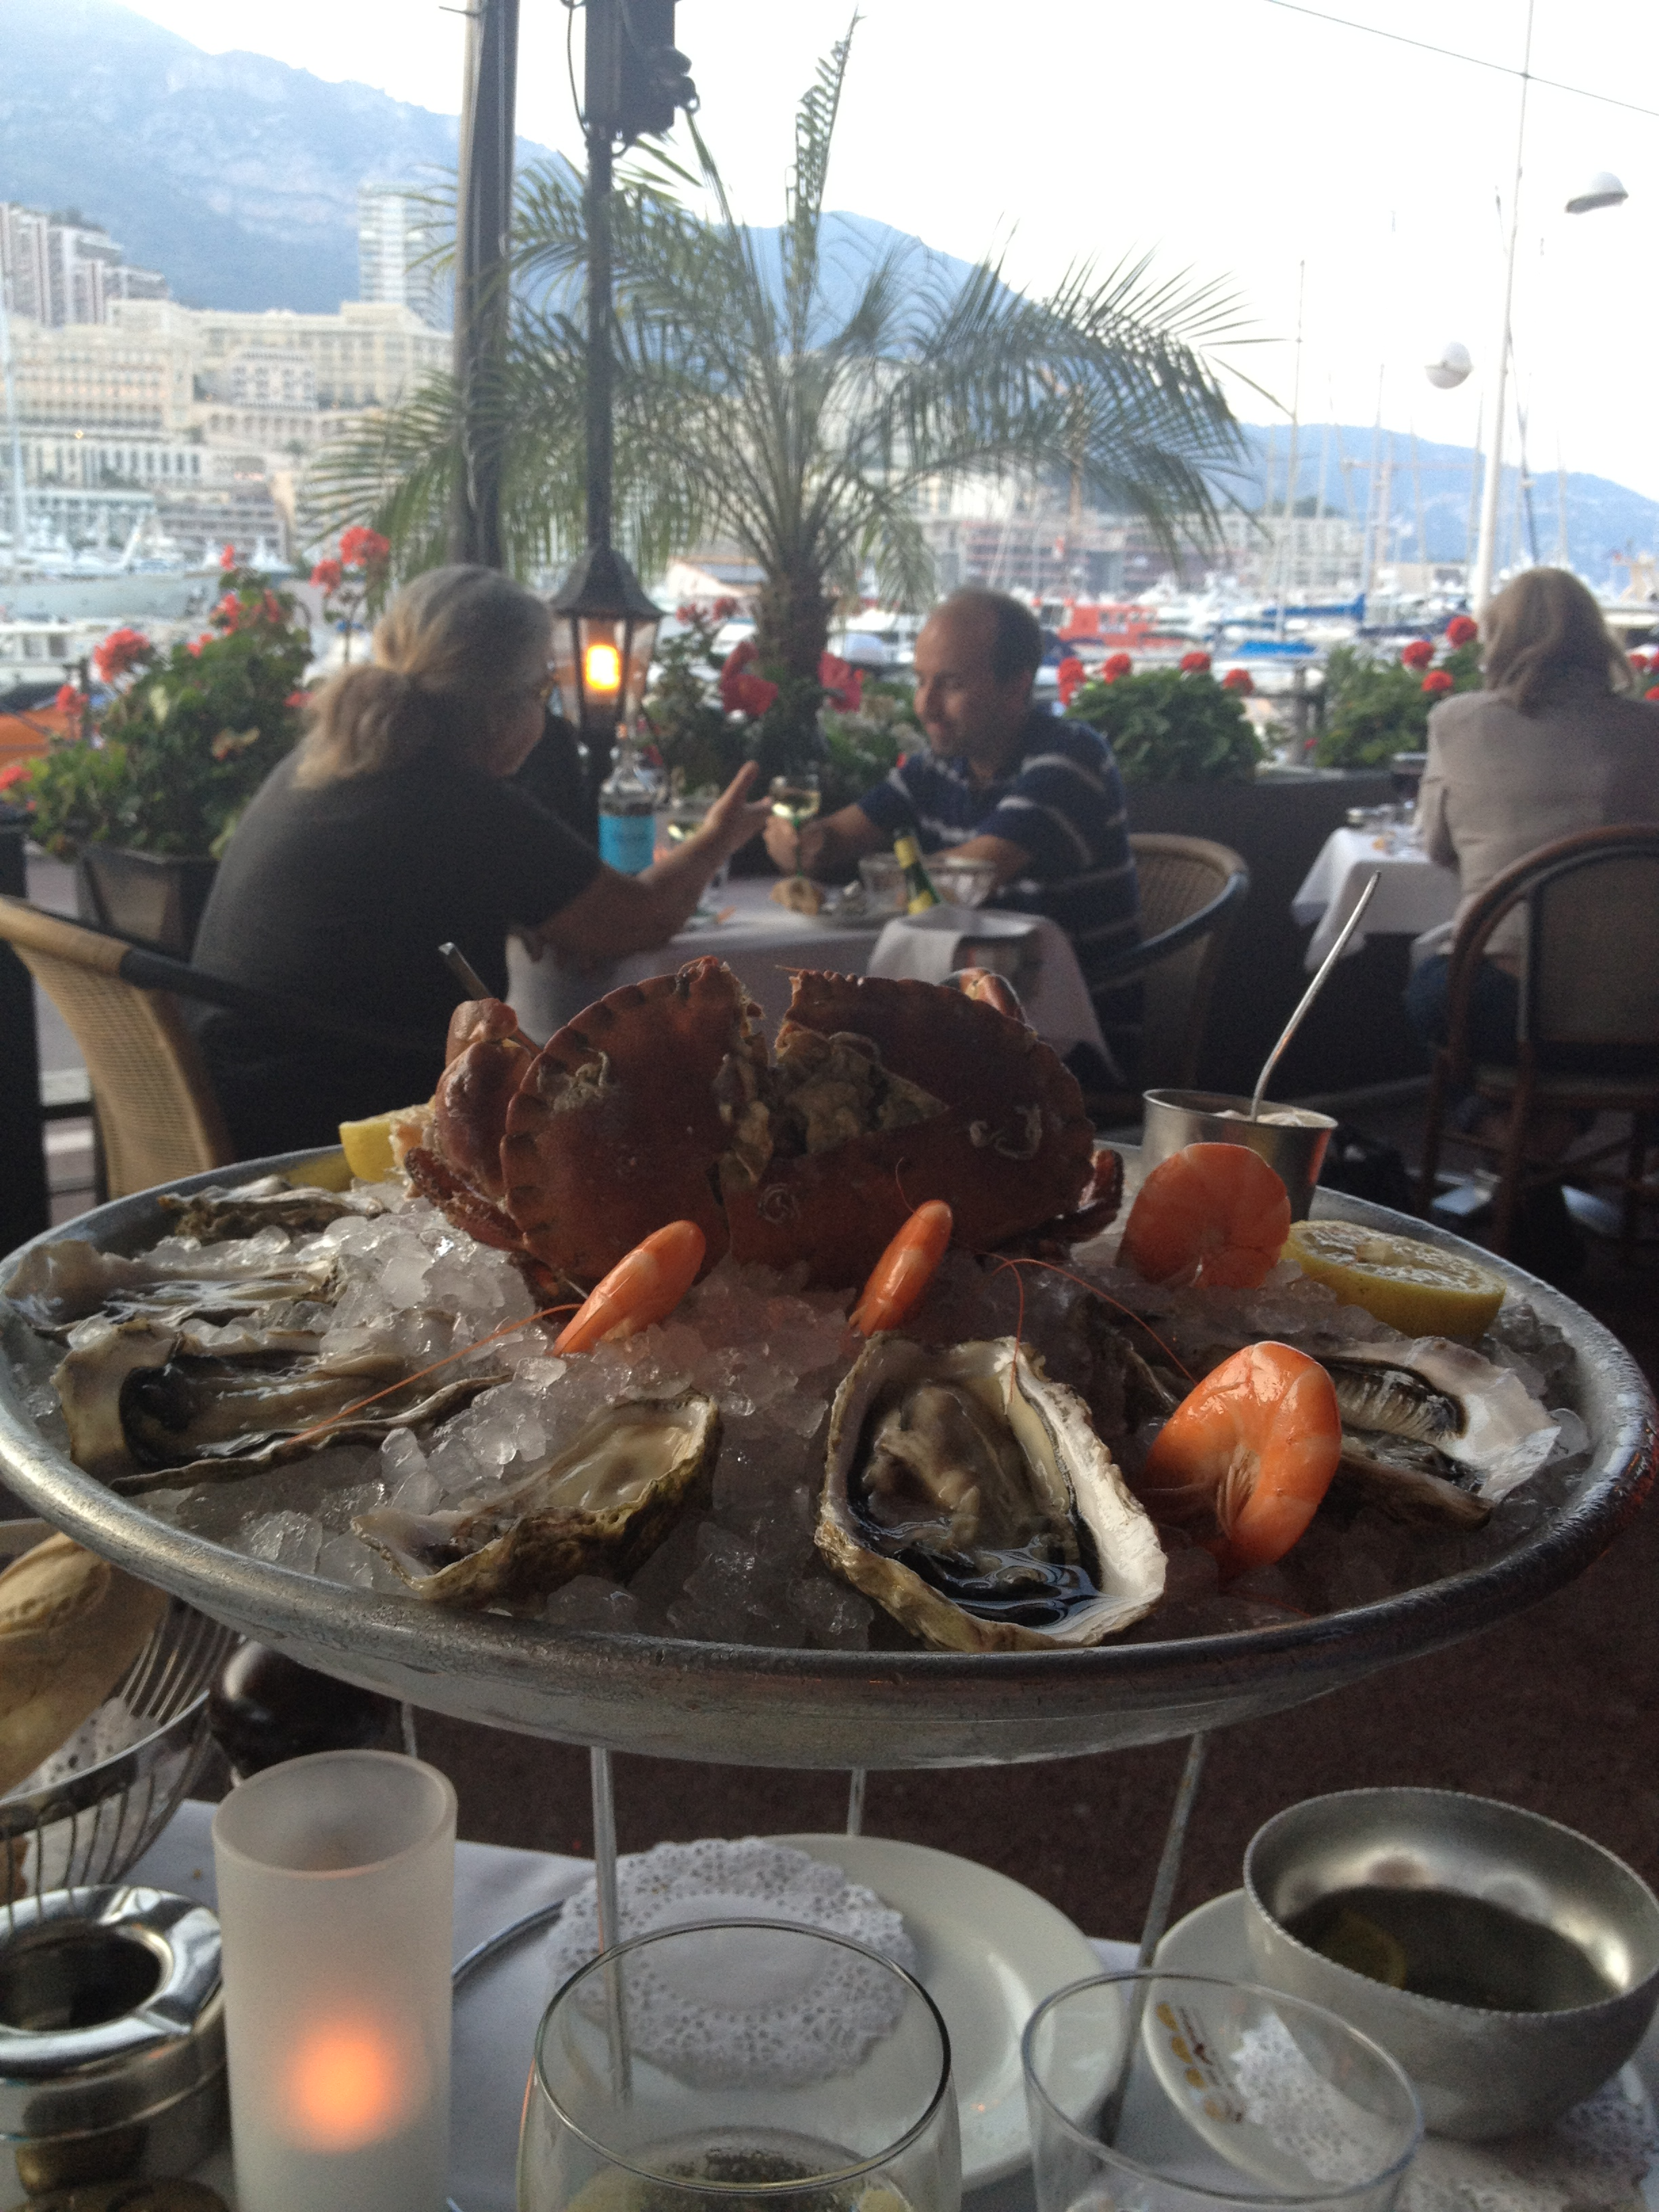 Seafood platter with the view of the Monaco's port